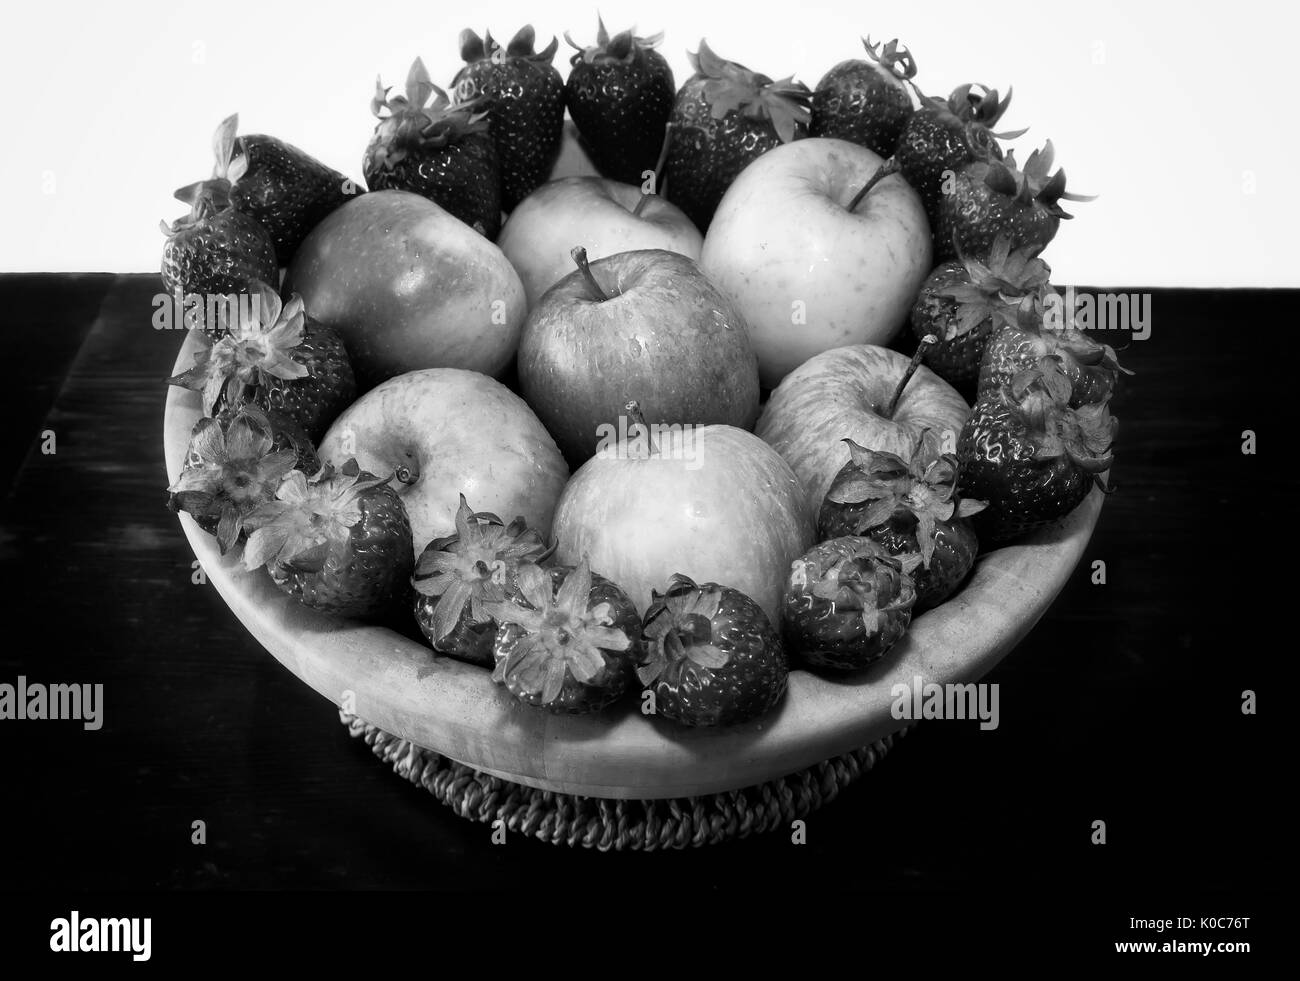 Fruit basket with strawberries and apples inside. Black and white photo - Stock Image